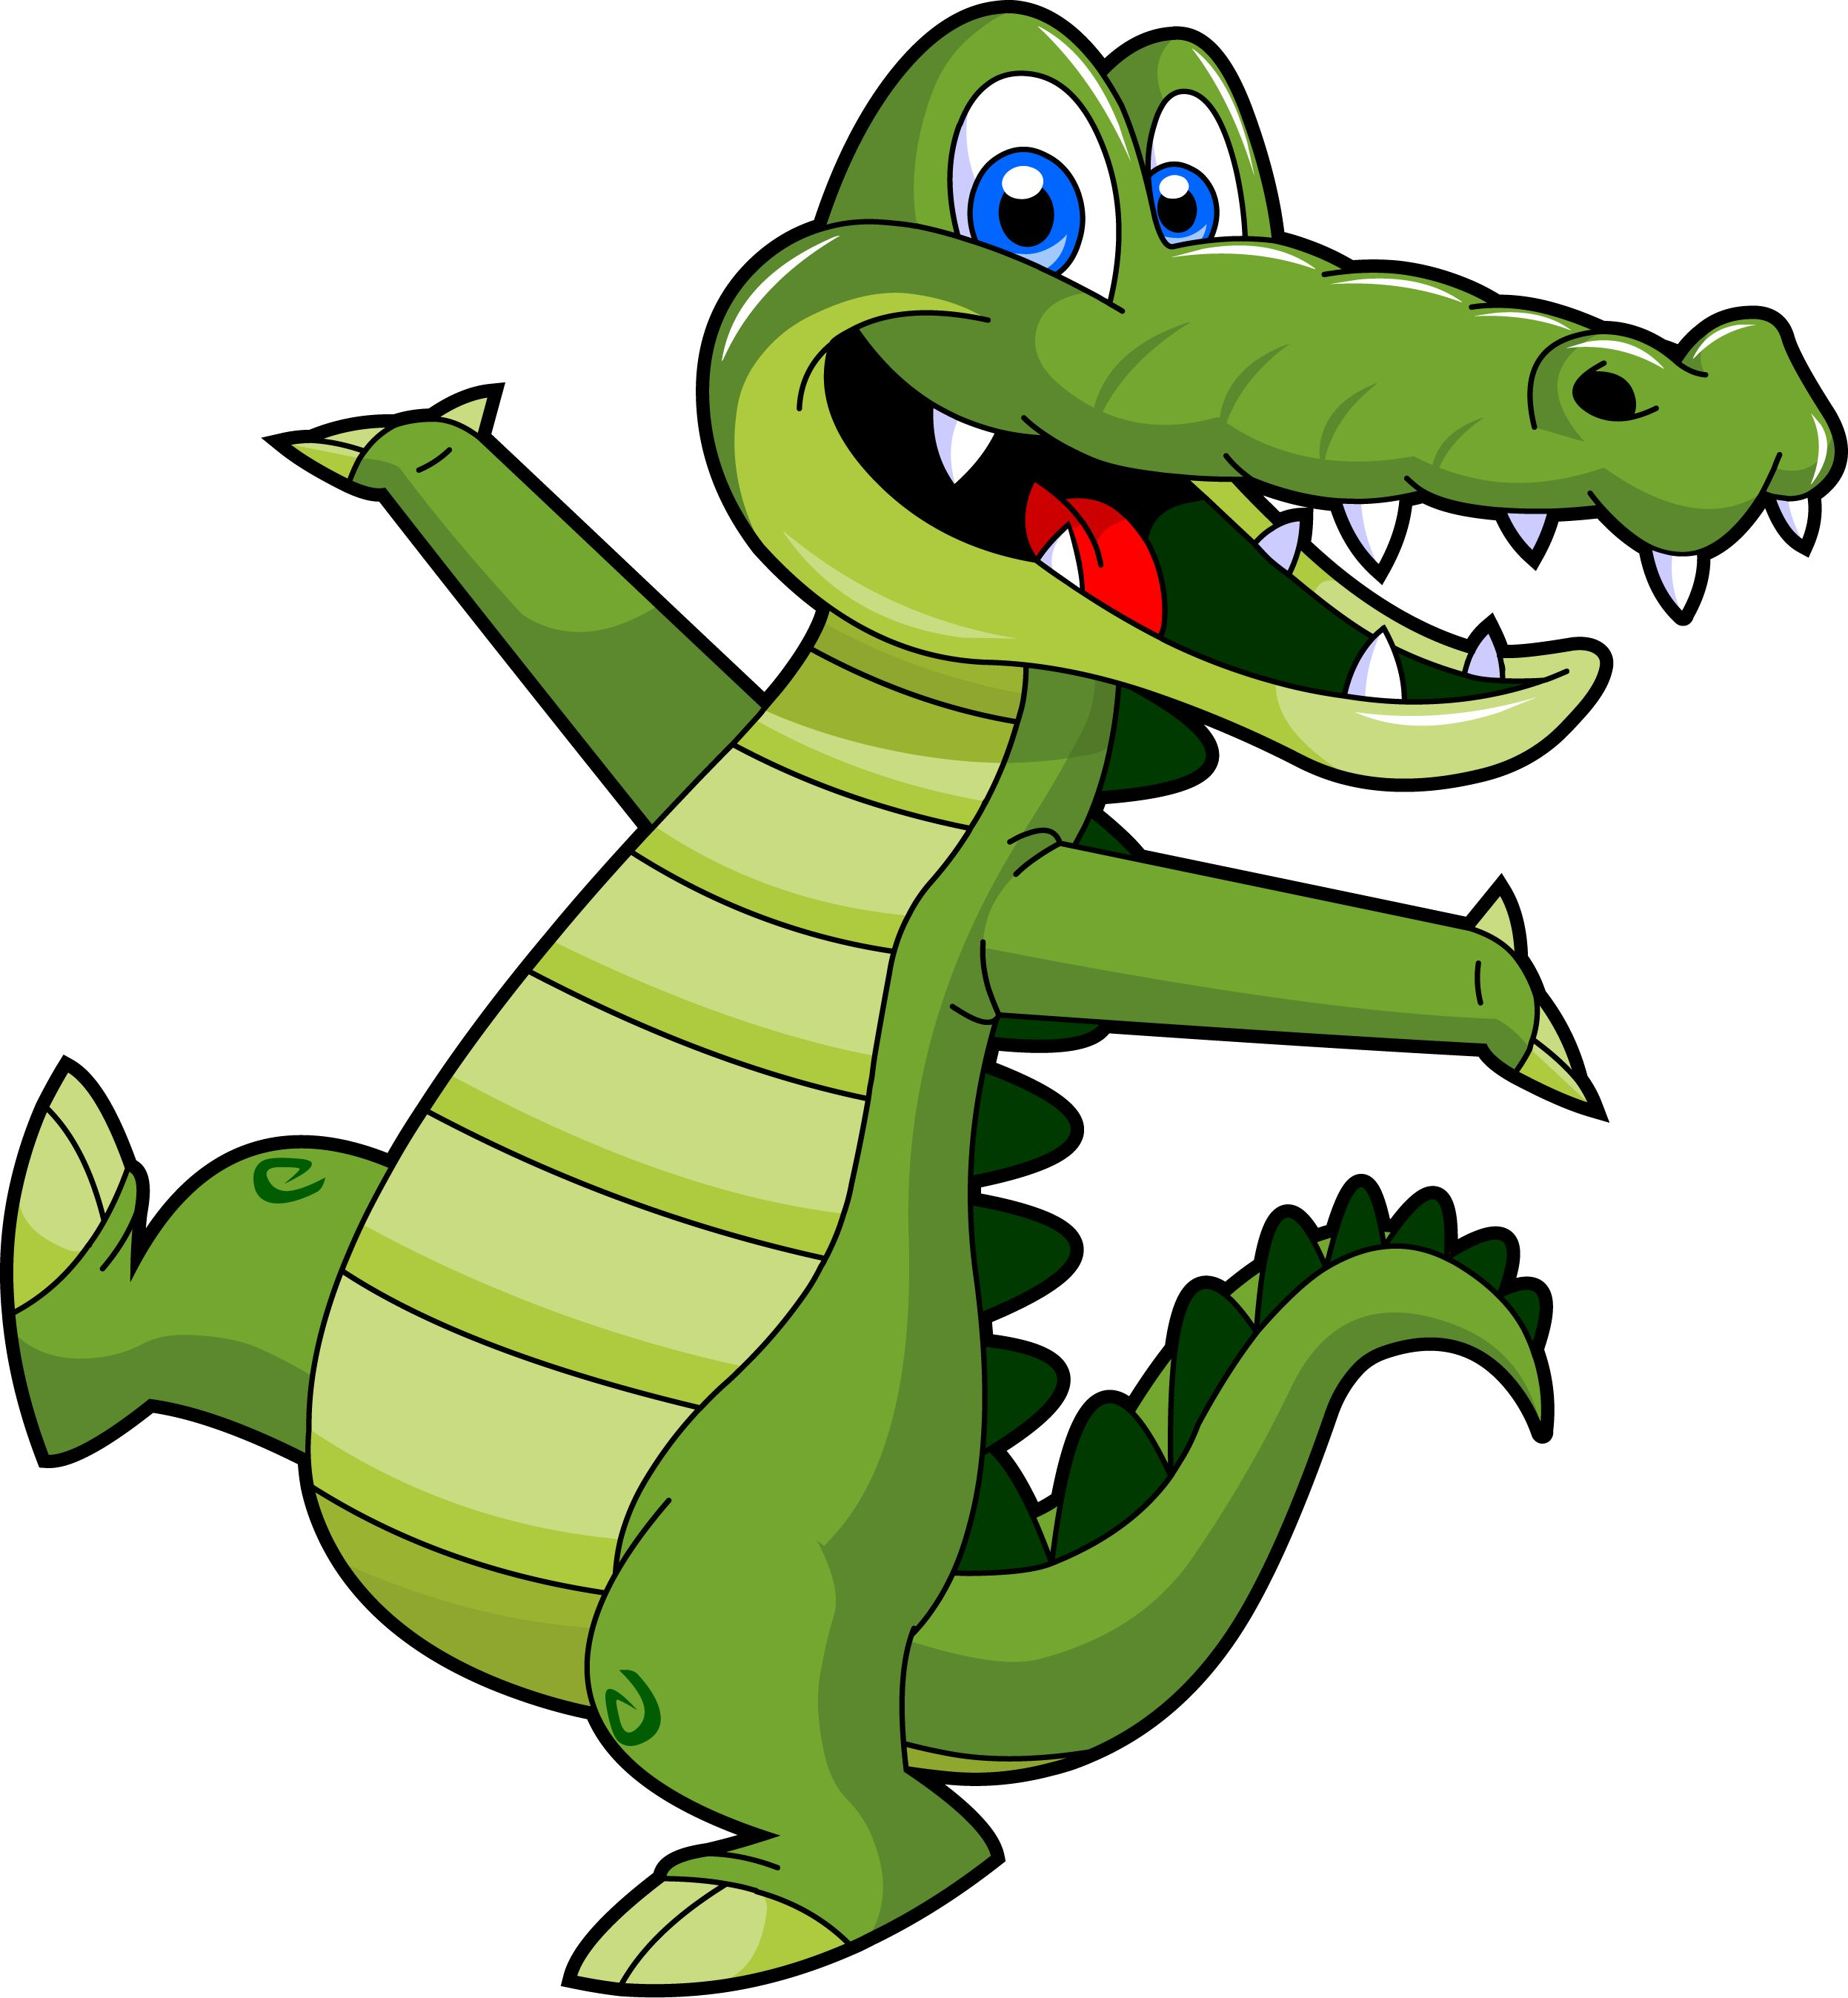 Crocodile clipart two. Alligator panda free images